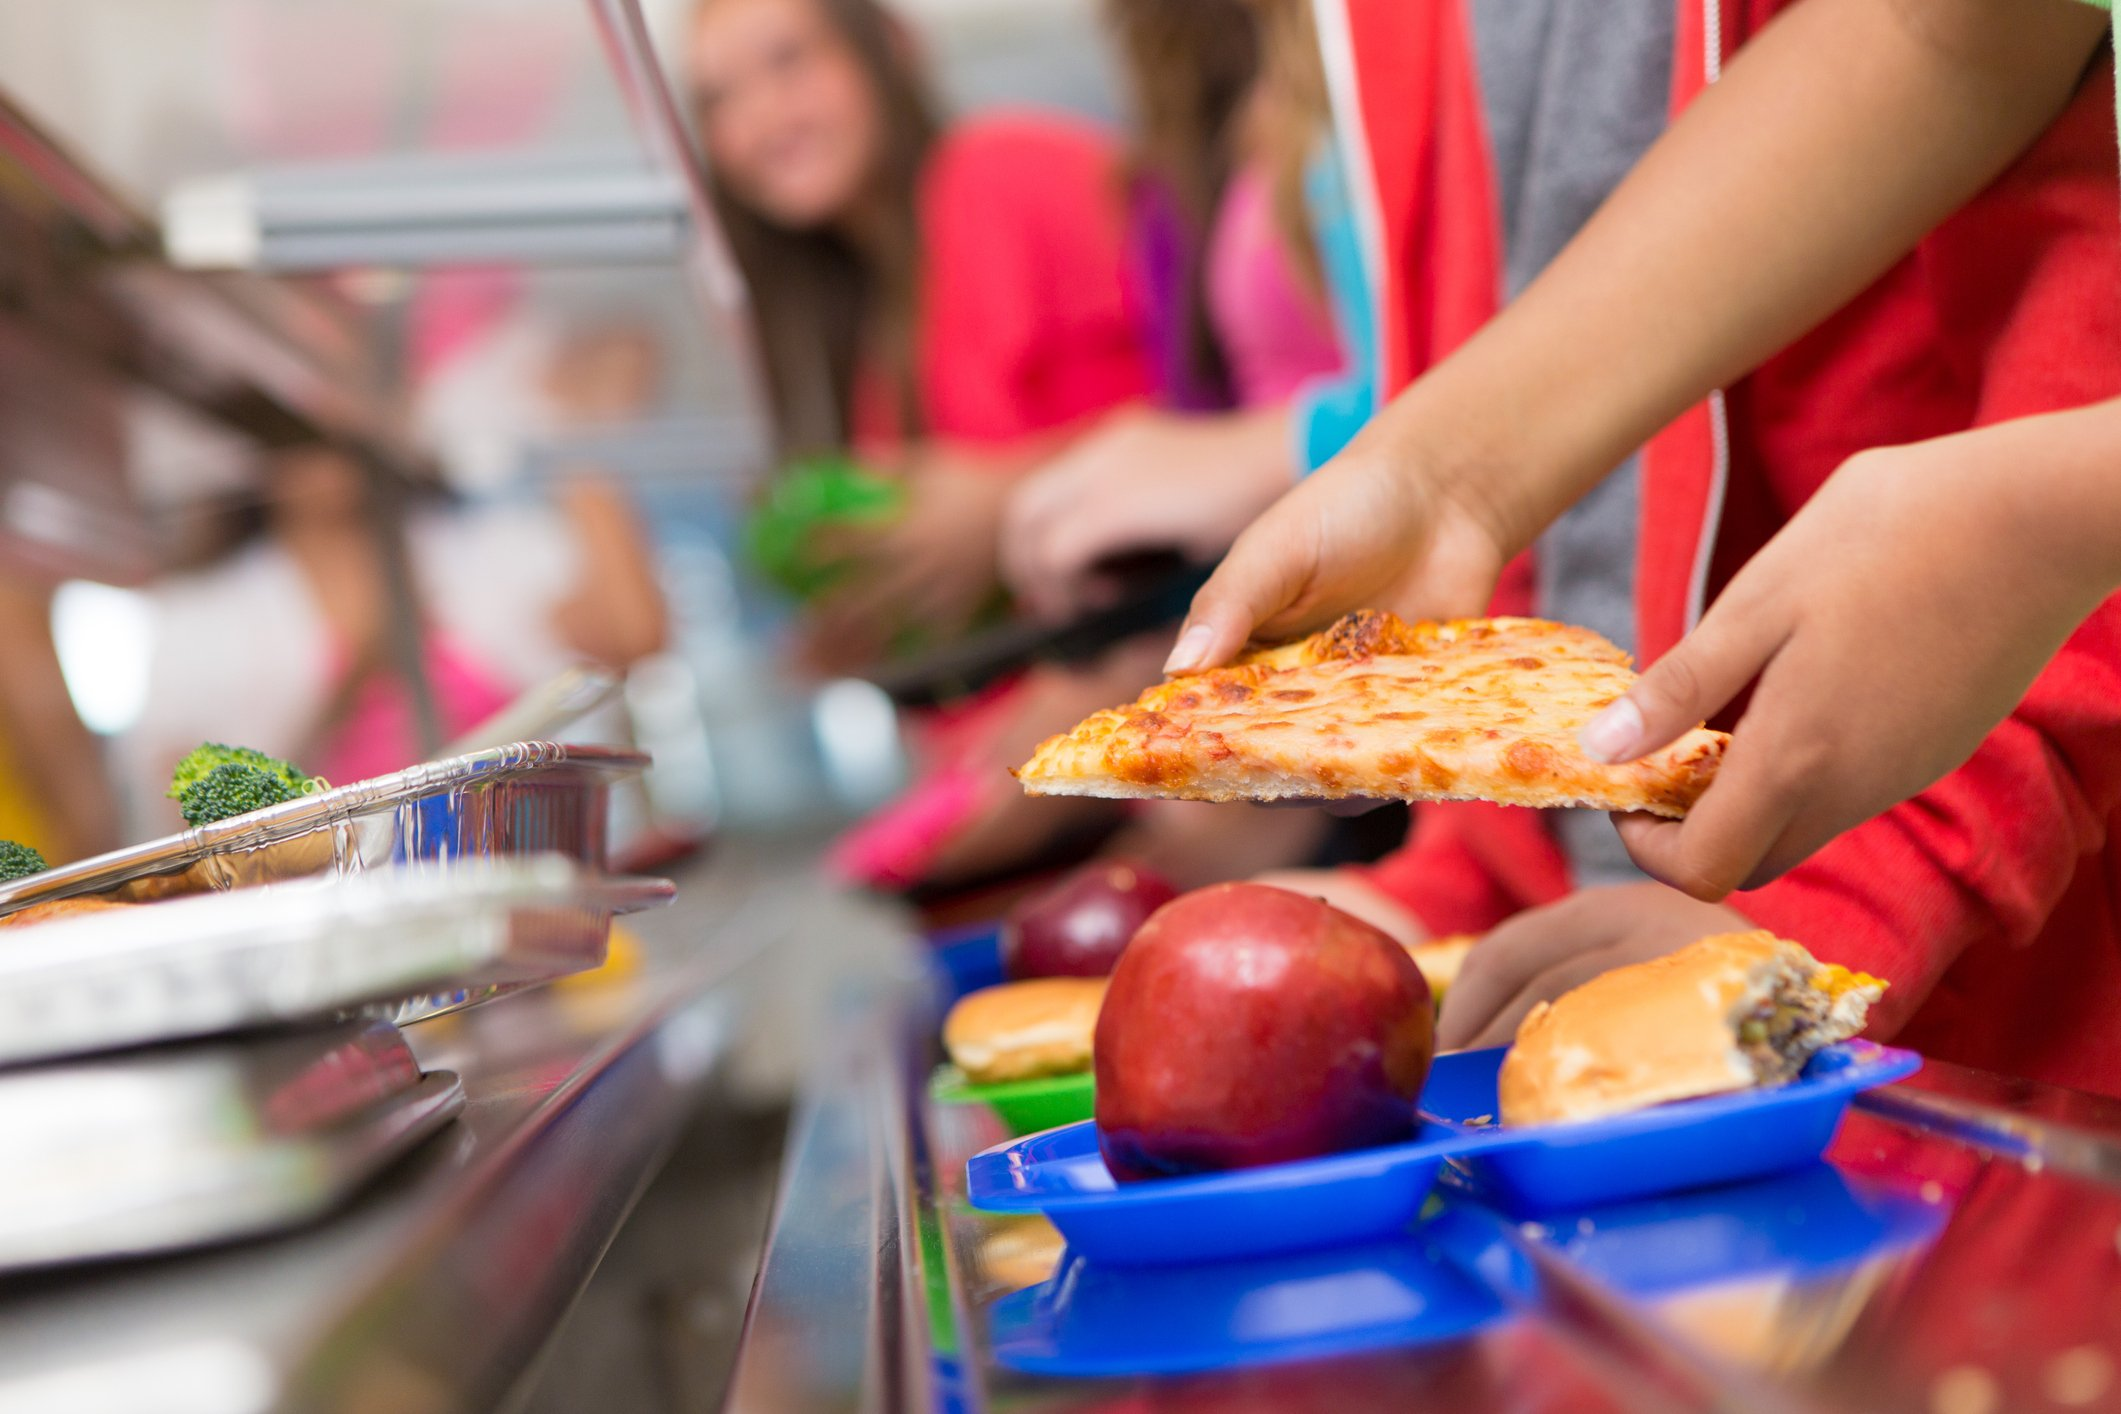 school lunch programs: 4 resources to improve school lunches